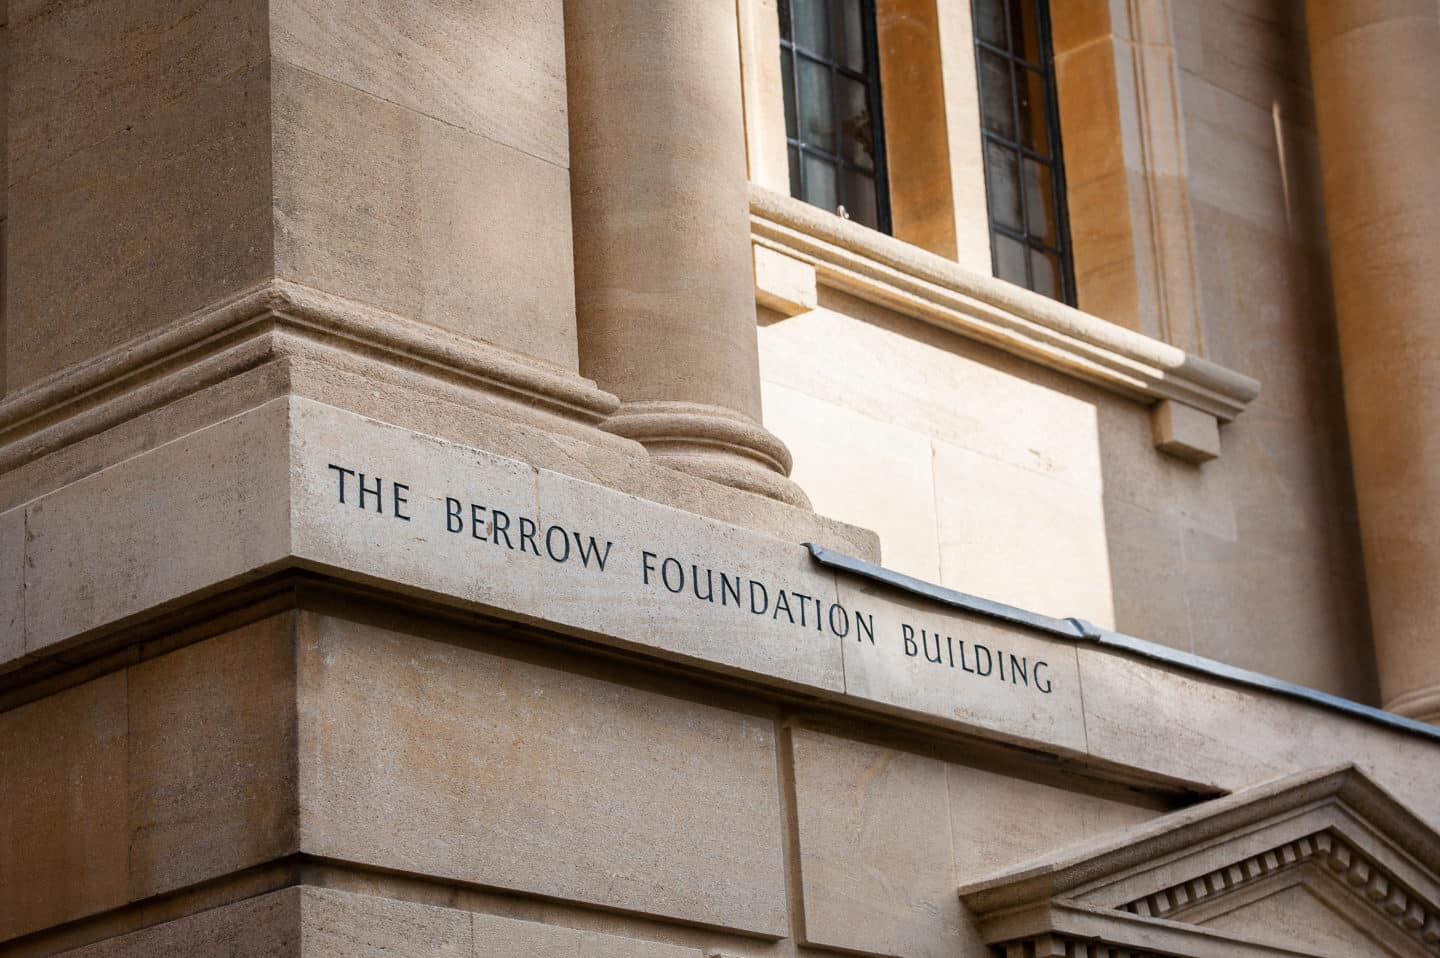 Berrow Foundation Building